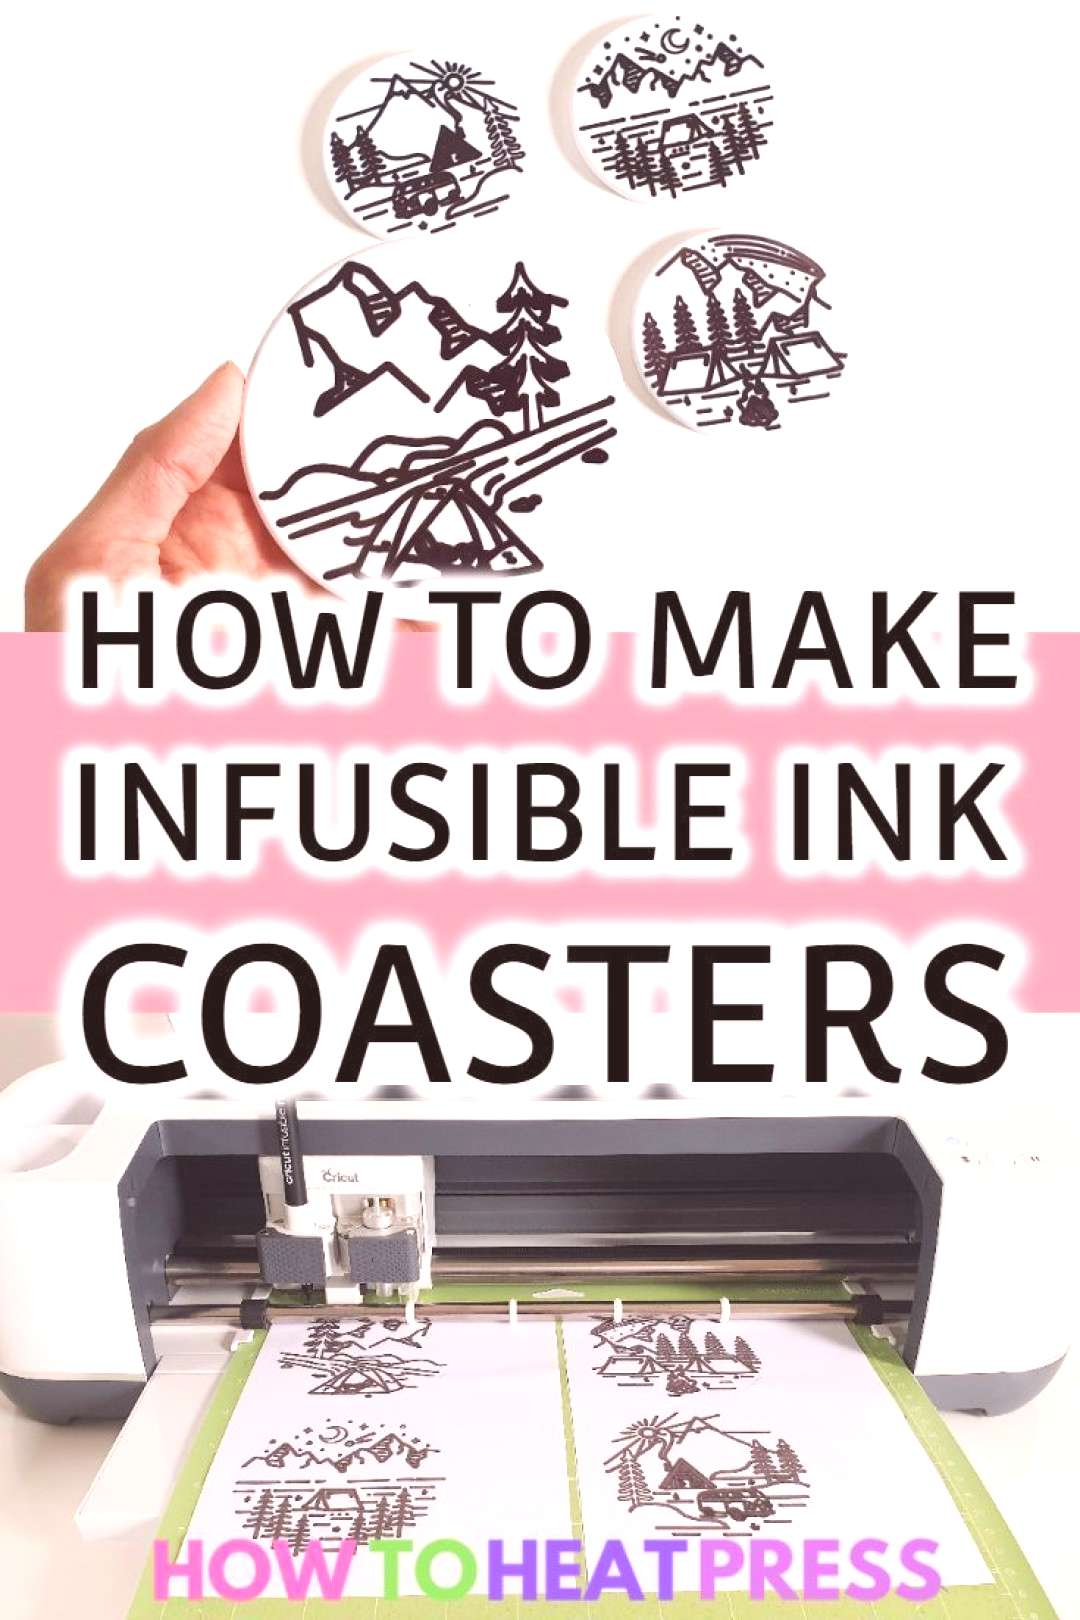 How To Draw With Cricut Infusible Ink Pens And Coaster Blanks!#blanks